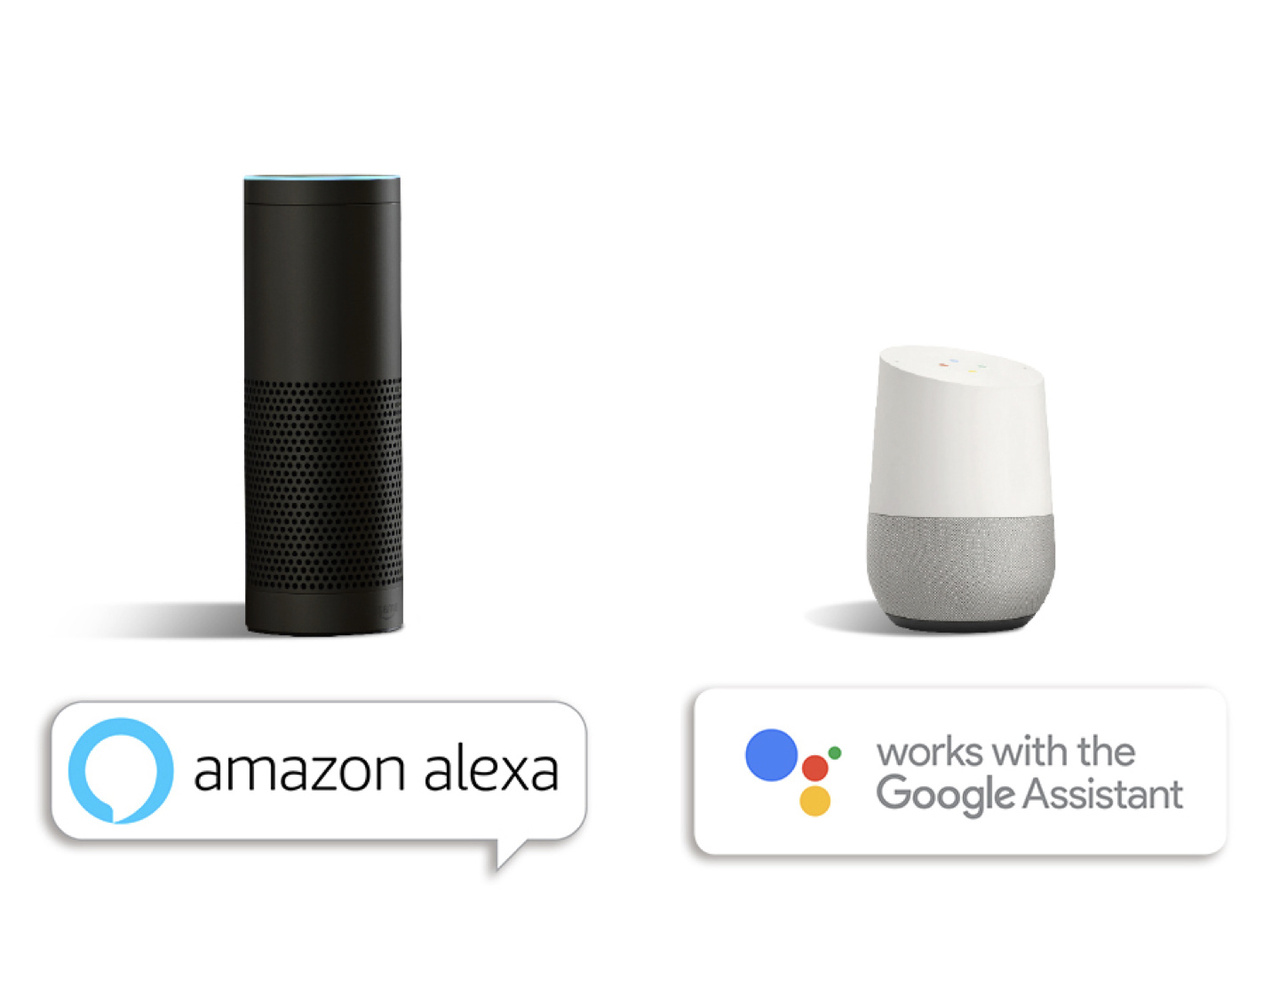 Amazon Alexa and Google Assistant on white background with product names below